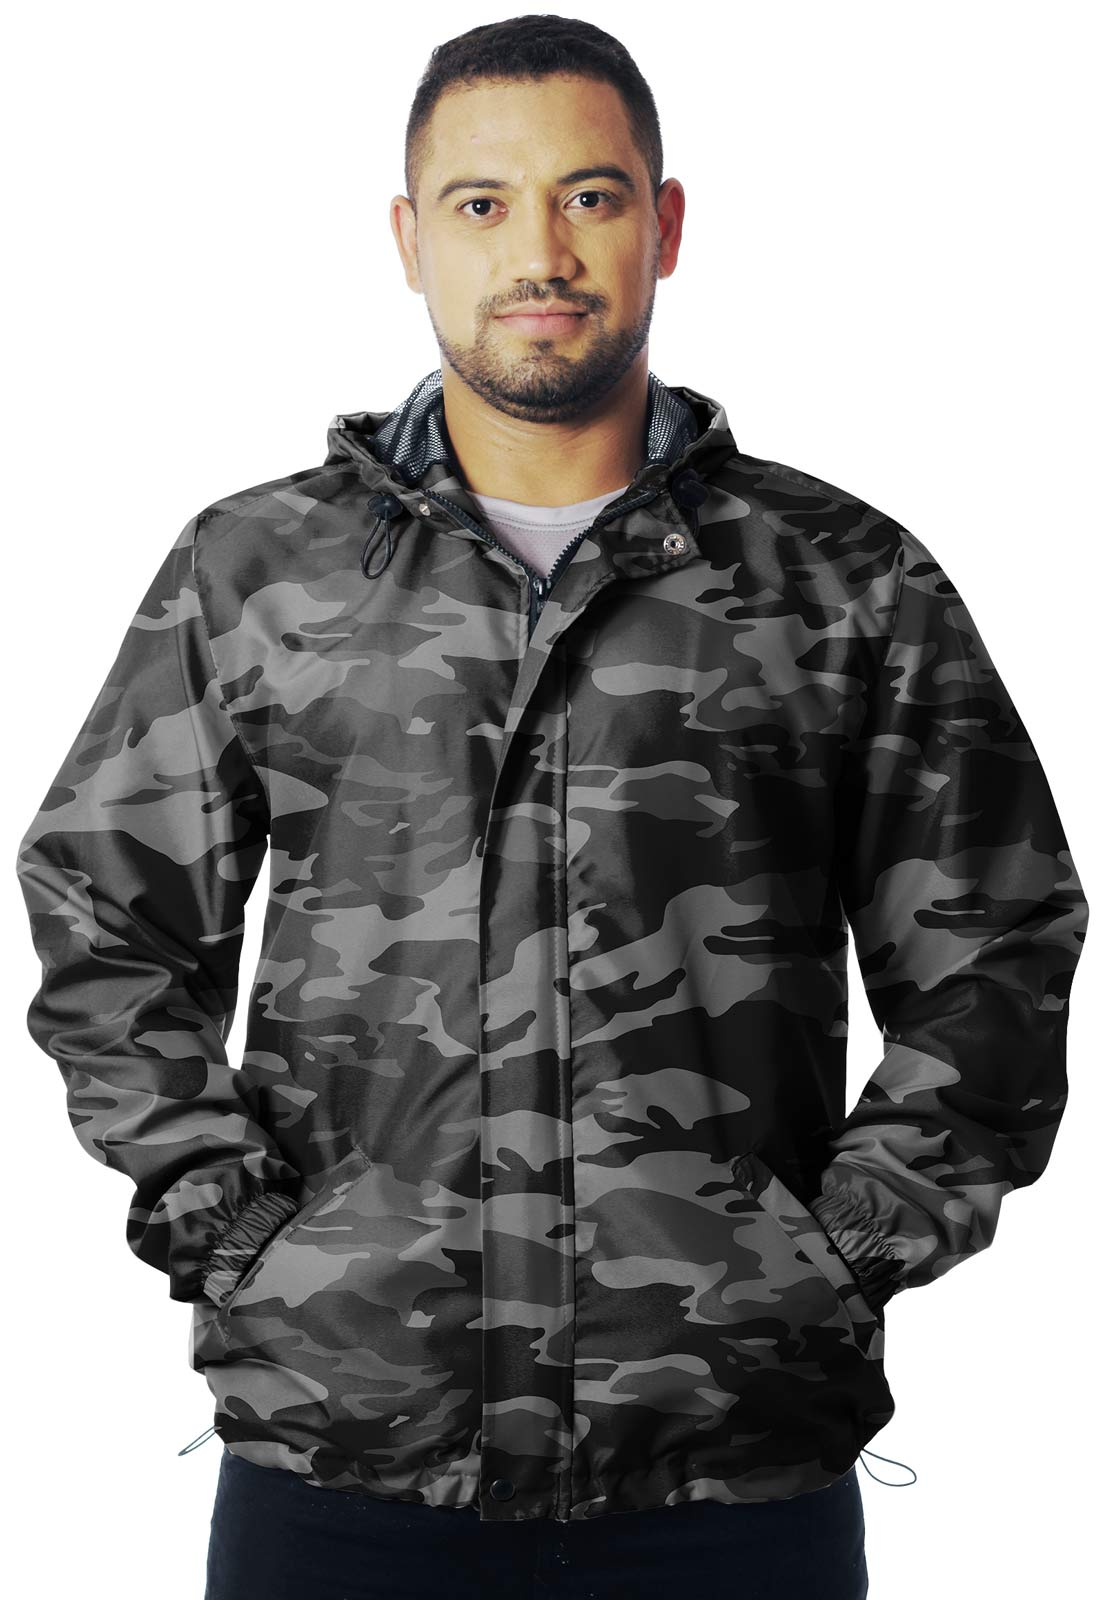 JAQUETA CORTA VENTO CAMUFLADA URBANO BLACK MASCULINA  - REAL HUNTER OUTDOORS